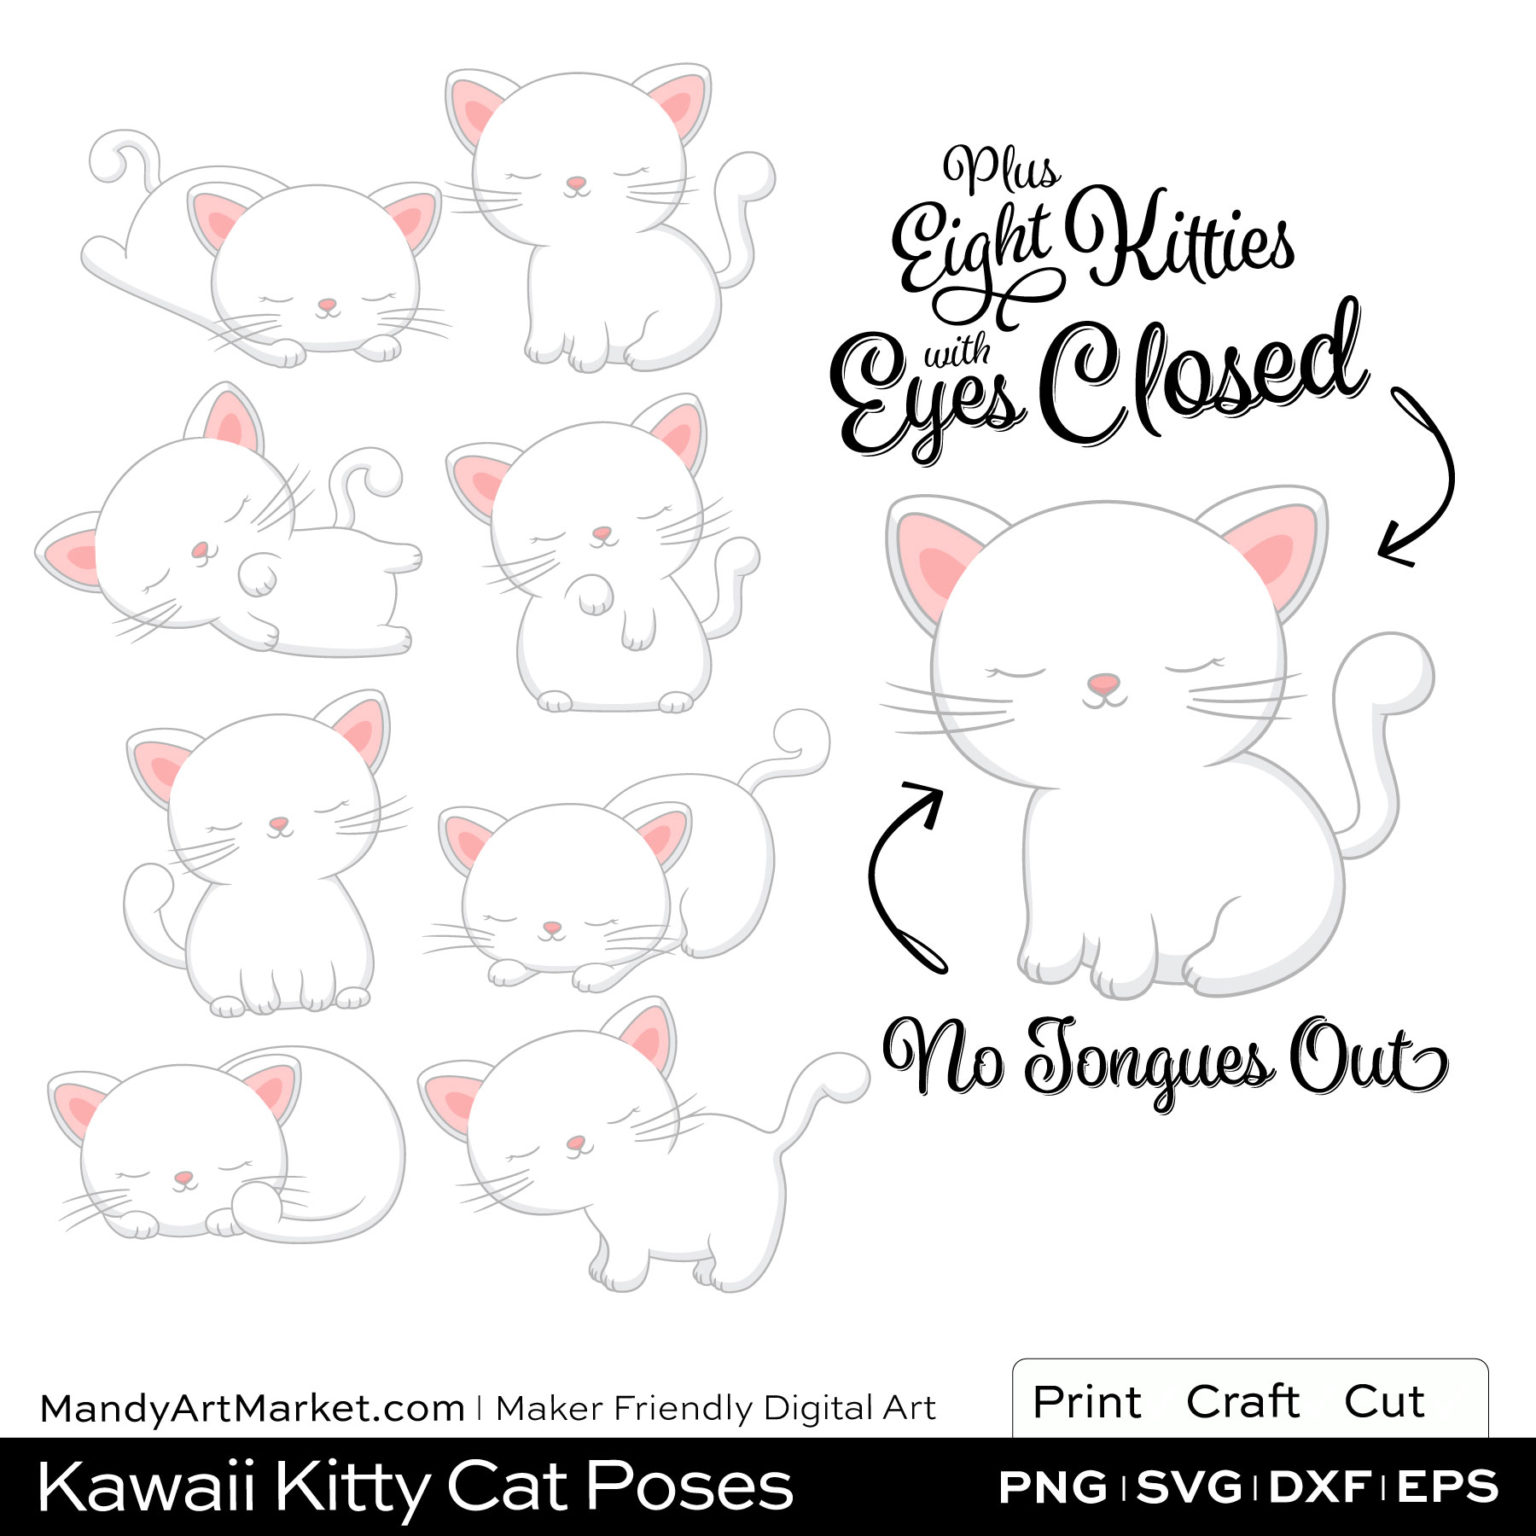 Snow White Kawaii Kitty Cat Poses Clipart PNGs Included in Download